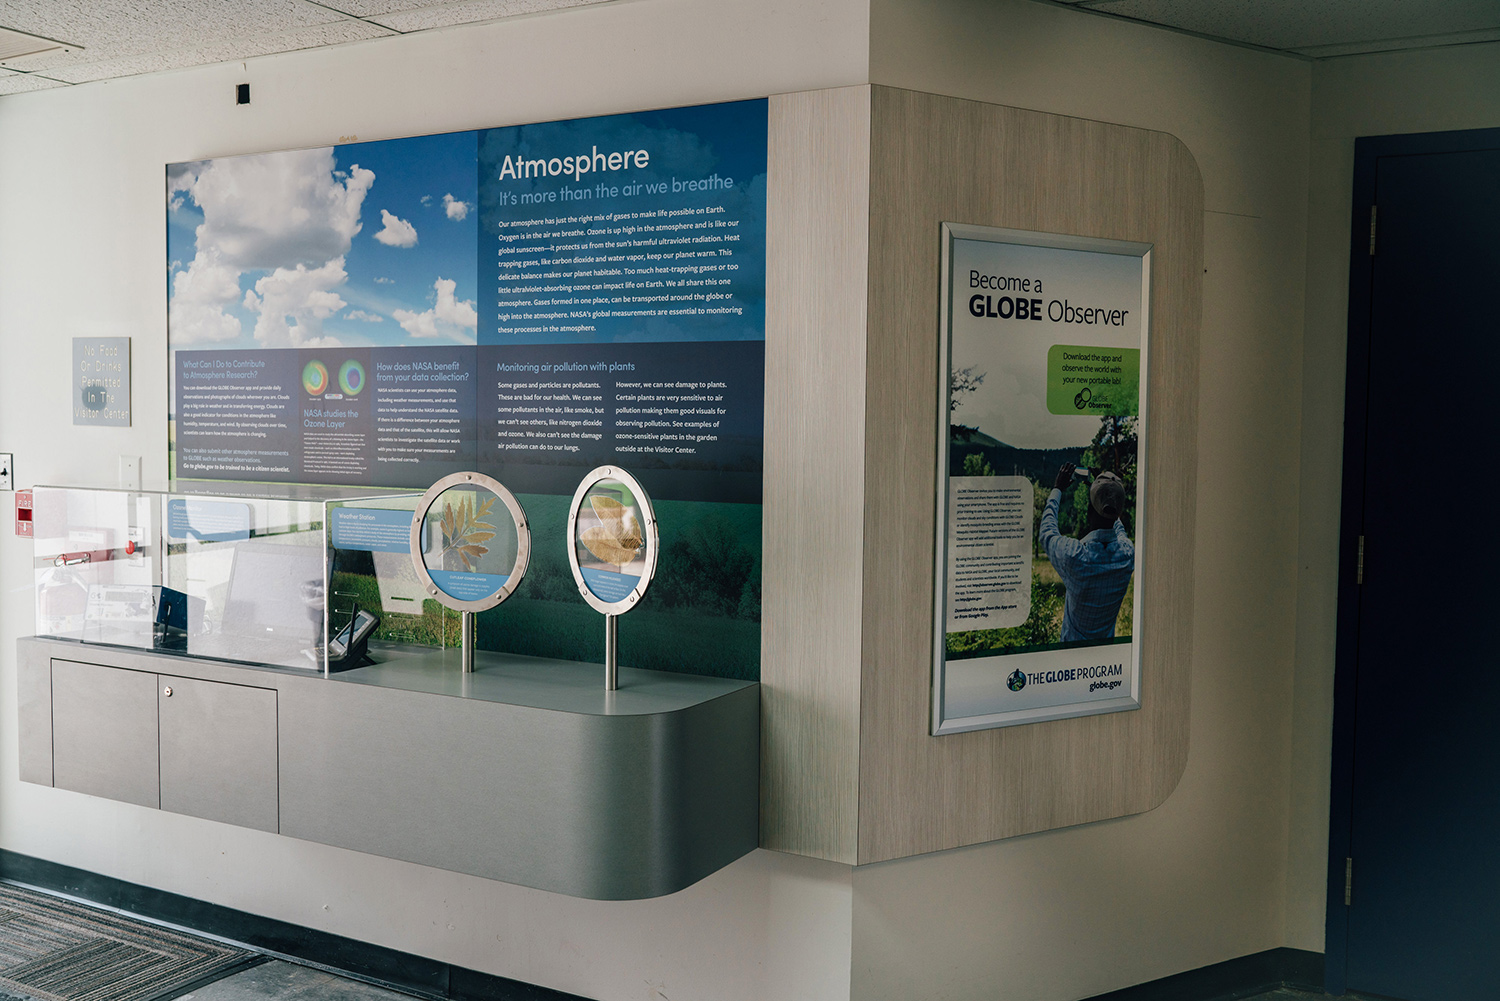 GLOBE Citizen Science Exhibit